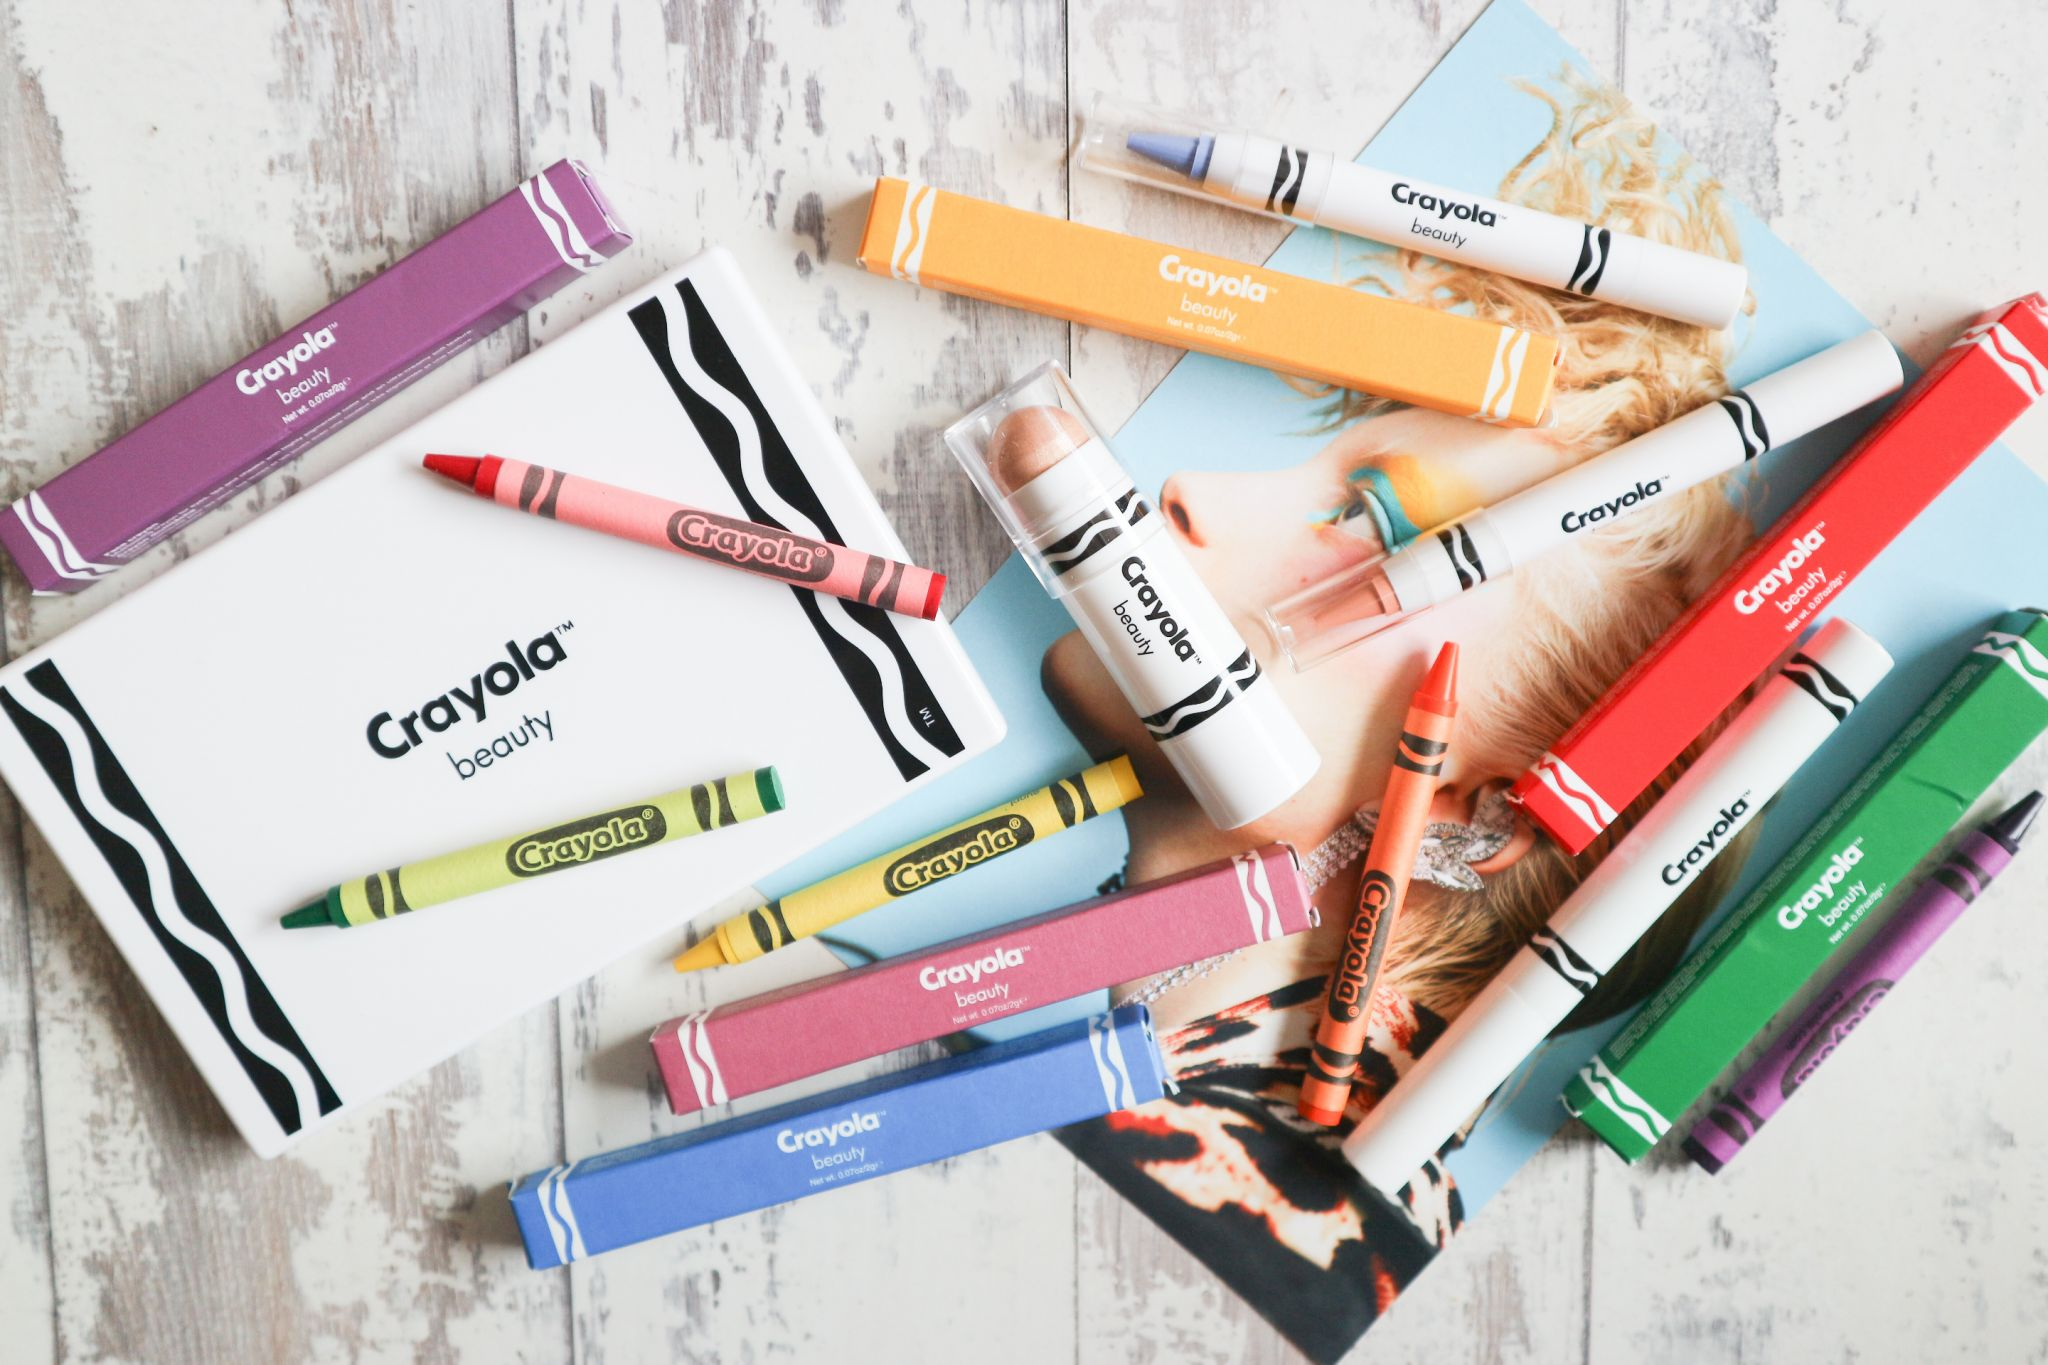 crayola beauty review